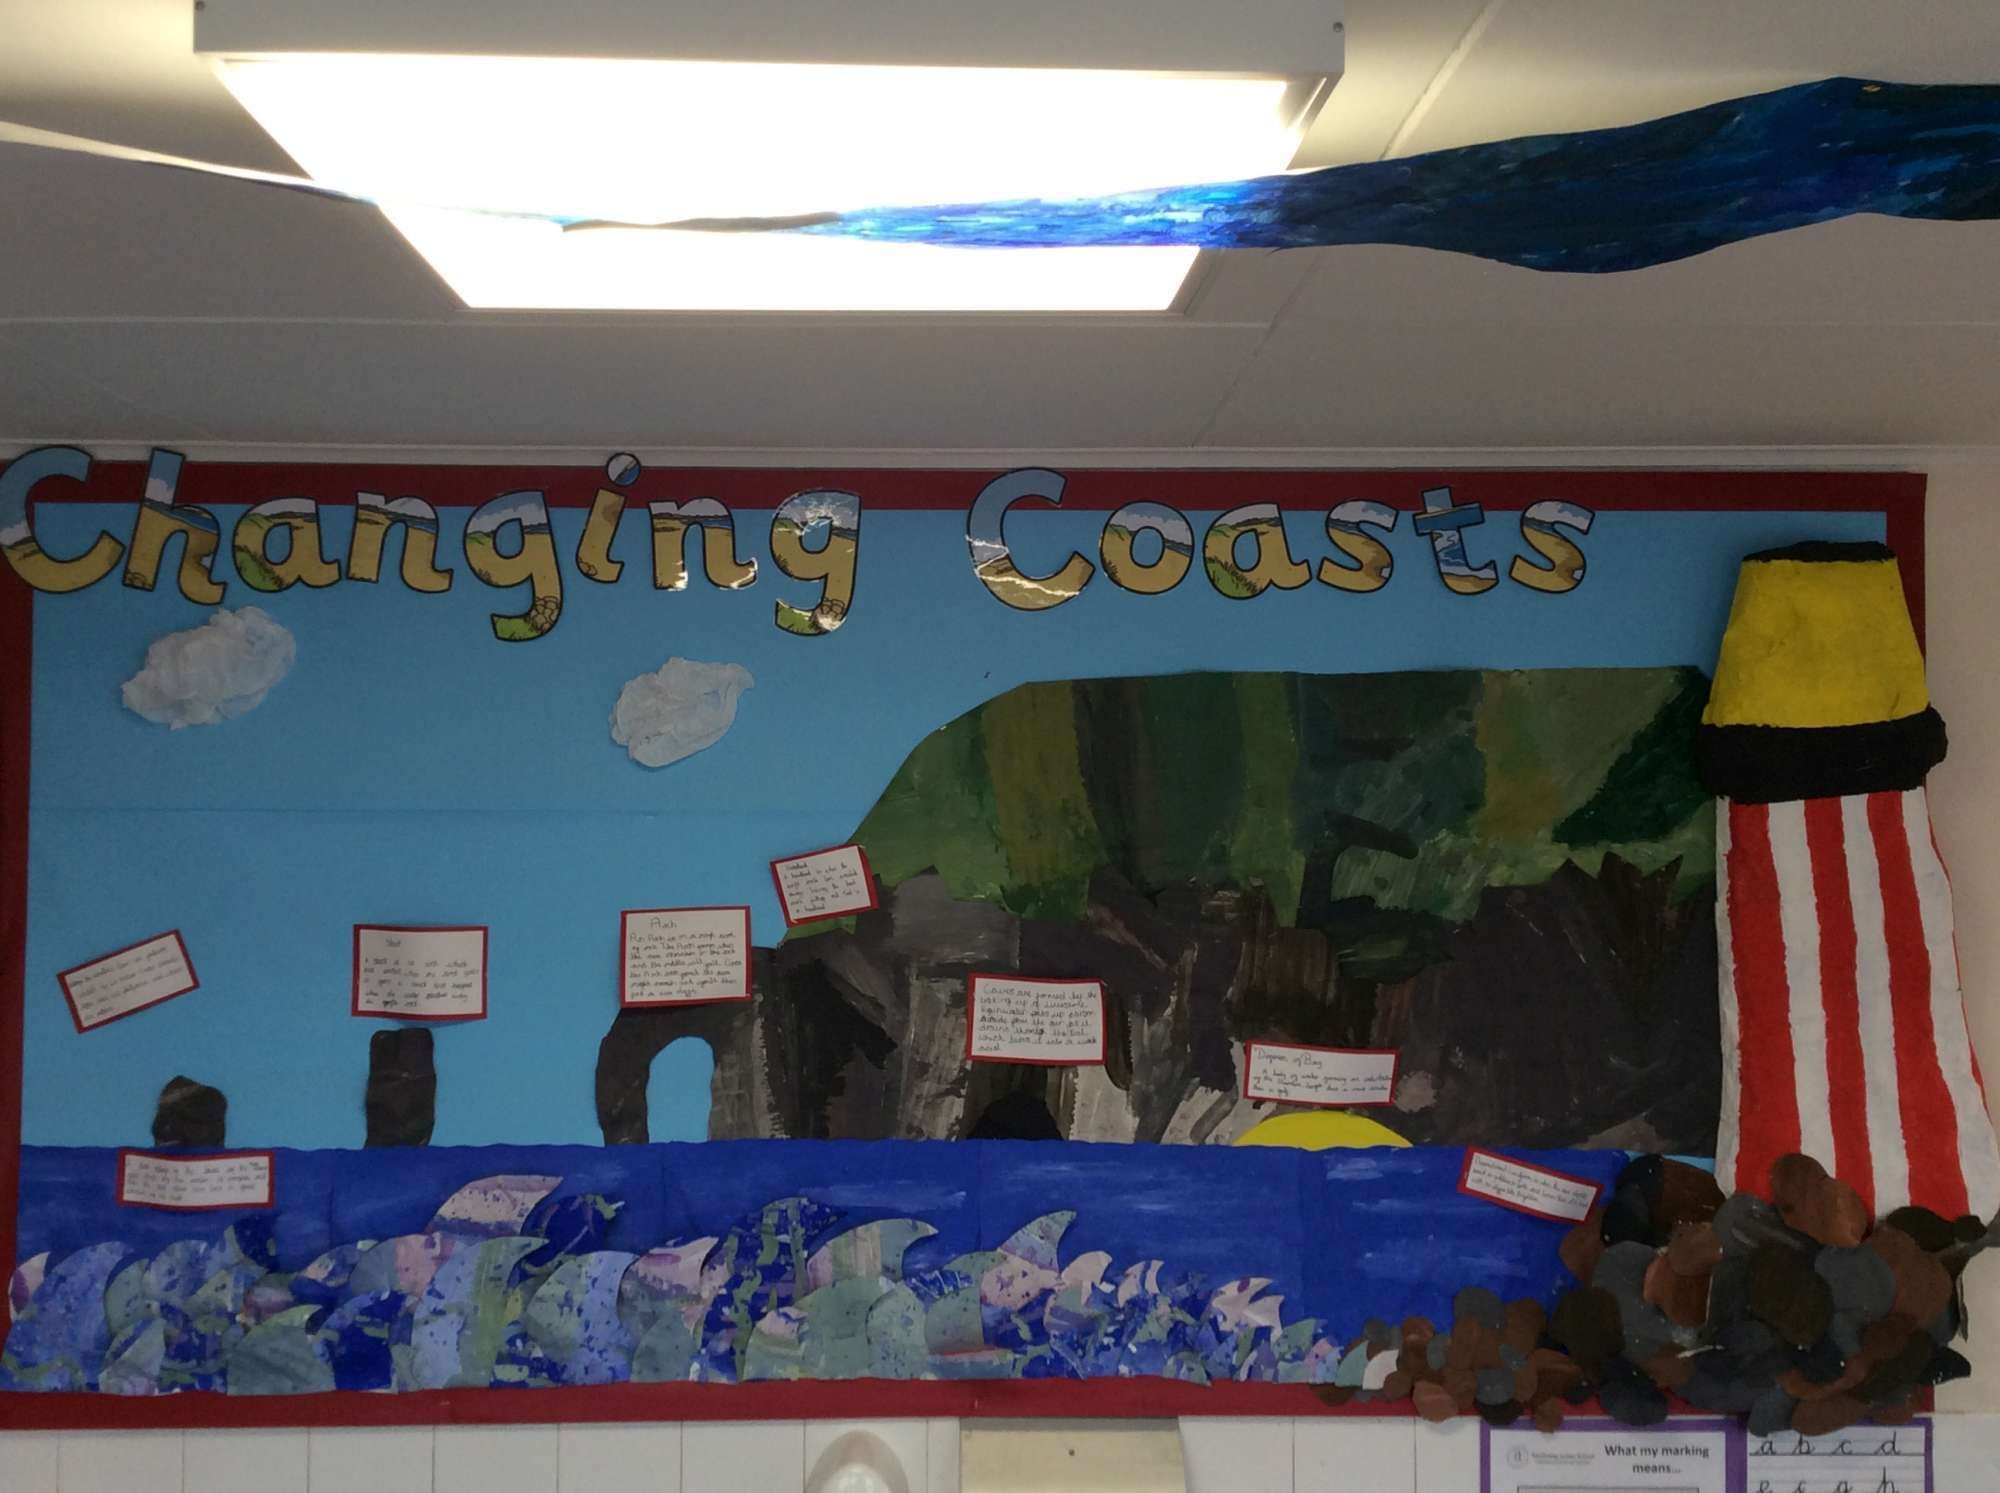 Geography Classroom Decor : Year coasts rivers classroom display mar